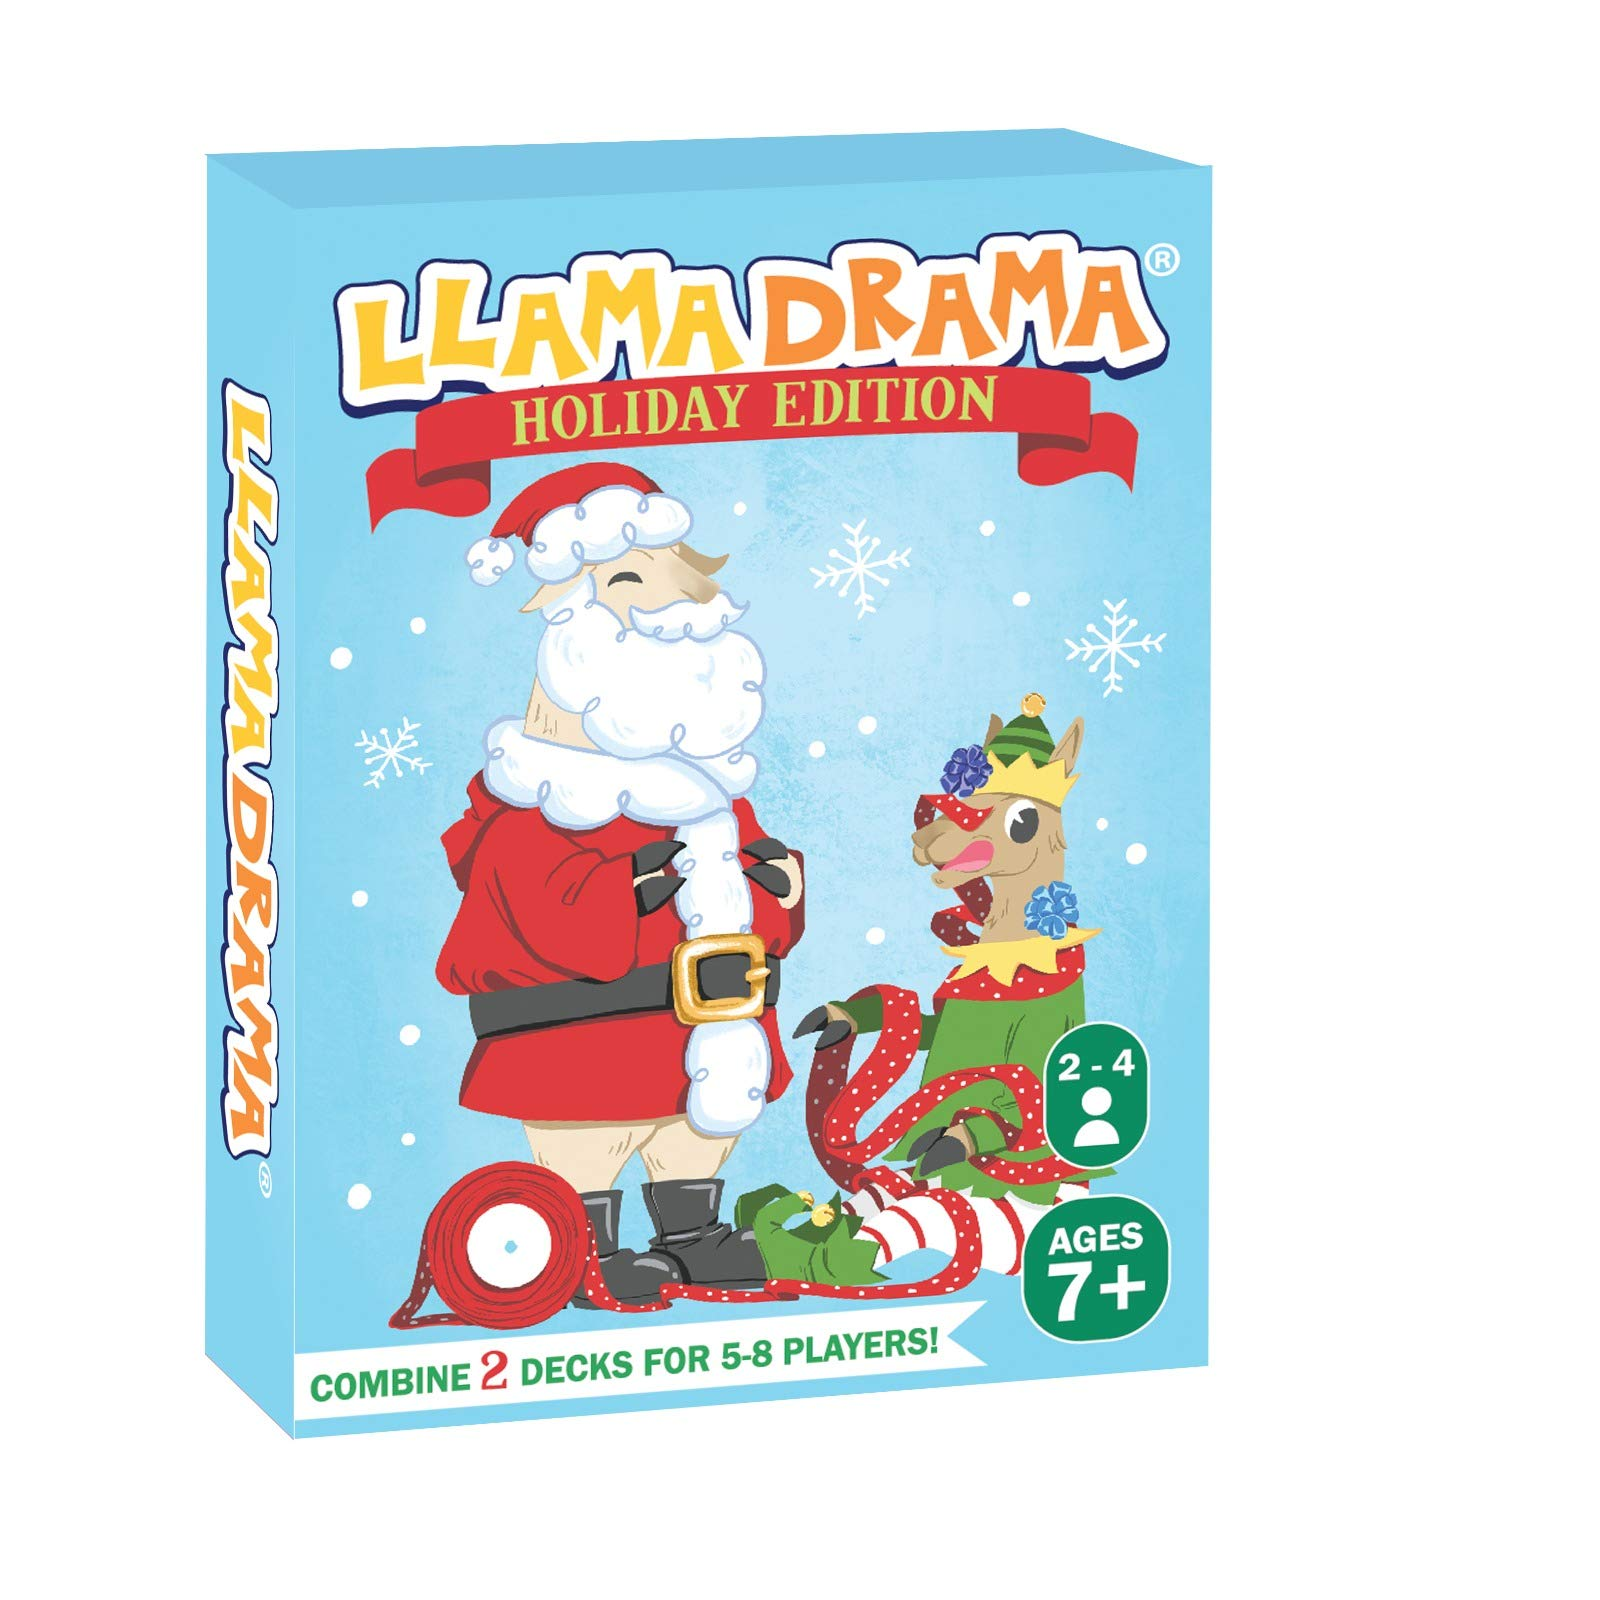 Llama Drama Card Game - Fun and Competitive Card Games - Easy to Learn for Kids and Adults (2 Pack Holiday Edition)